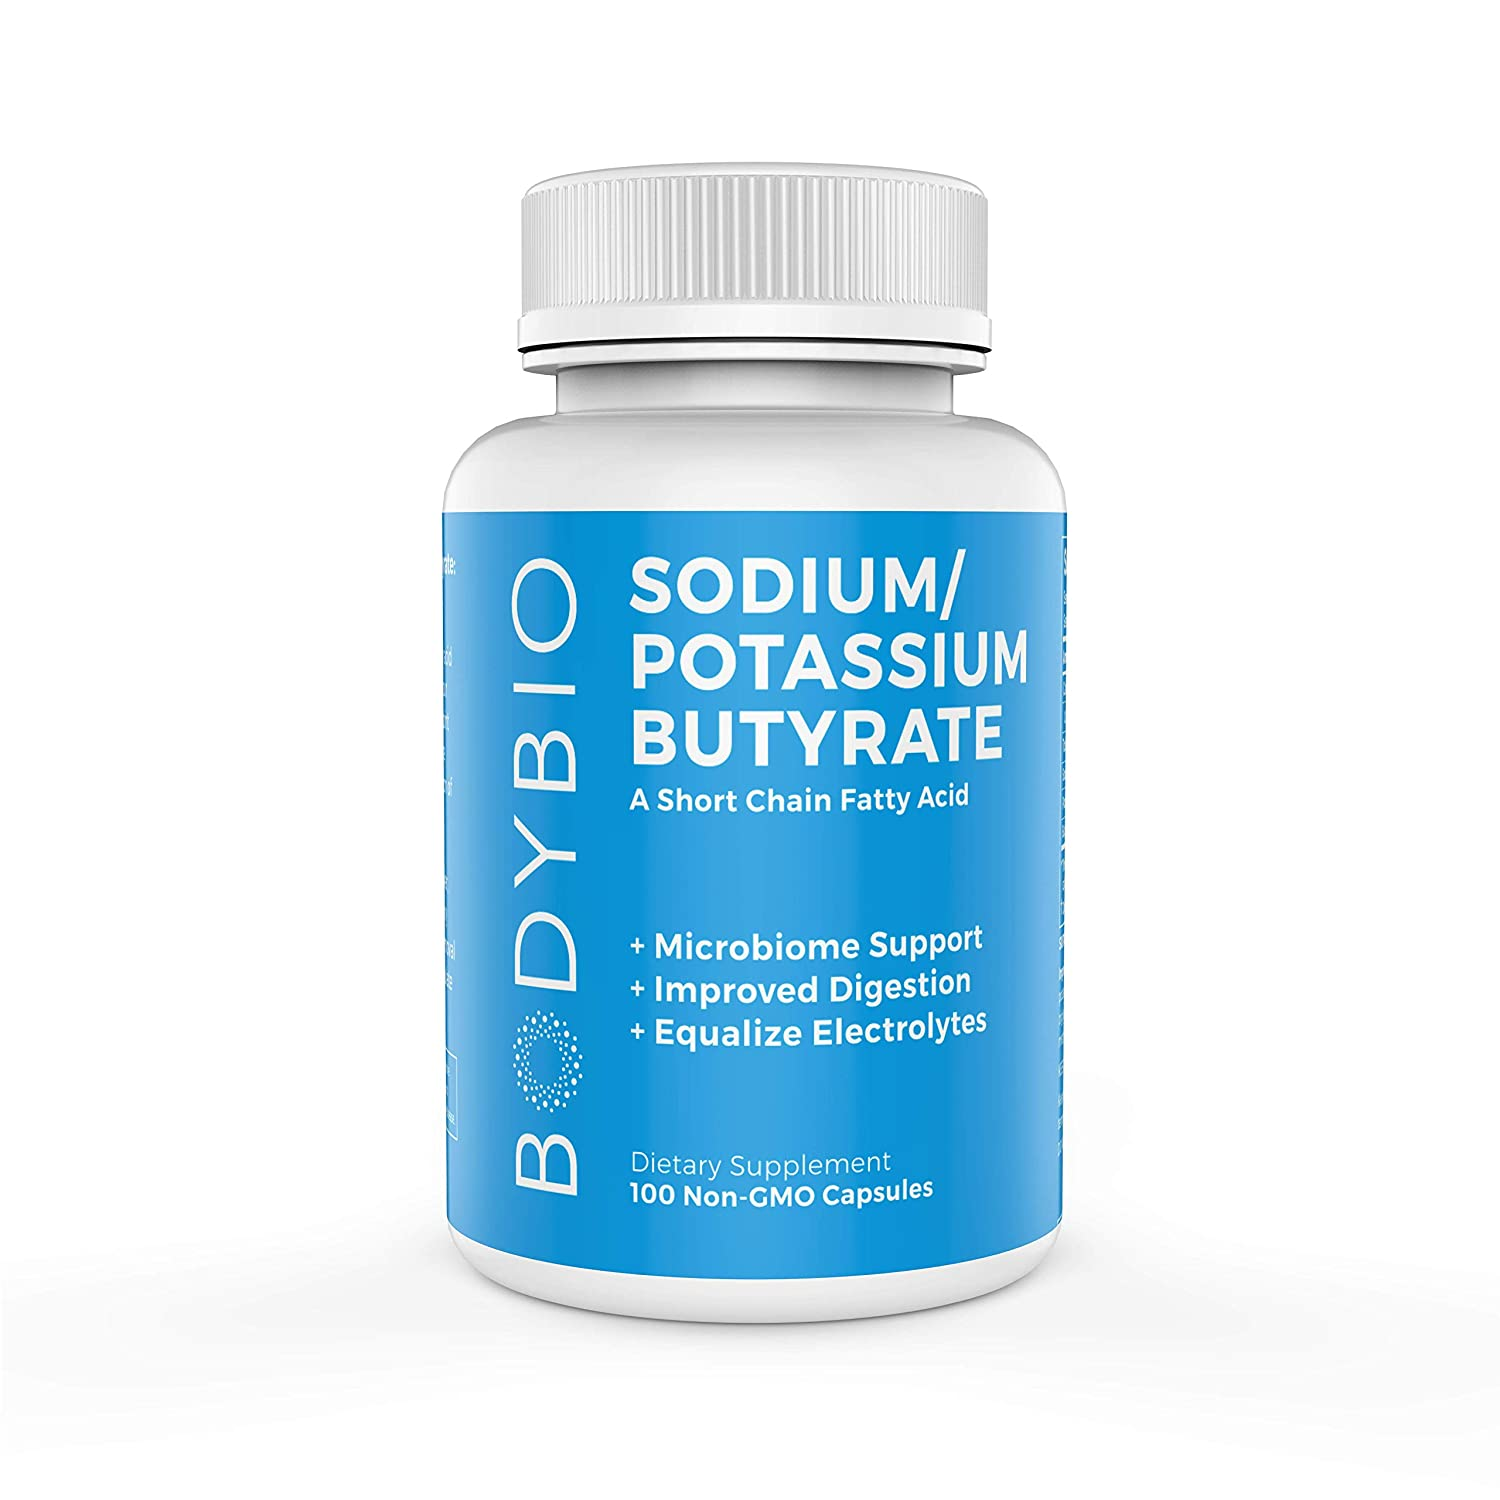 BodyBio Butyrate with Sodium Potassium – Supports Healthy Digestion, Gut Microbiome – Increases Leptin Production for Appetite Control – No Fillers or Additives – 100 Capsules